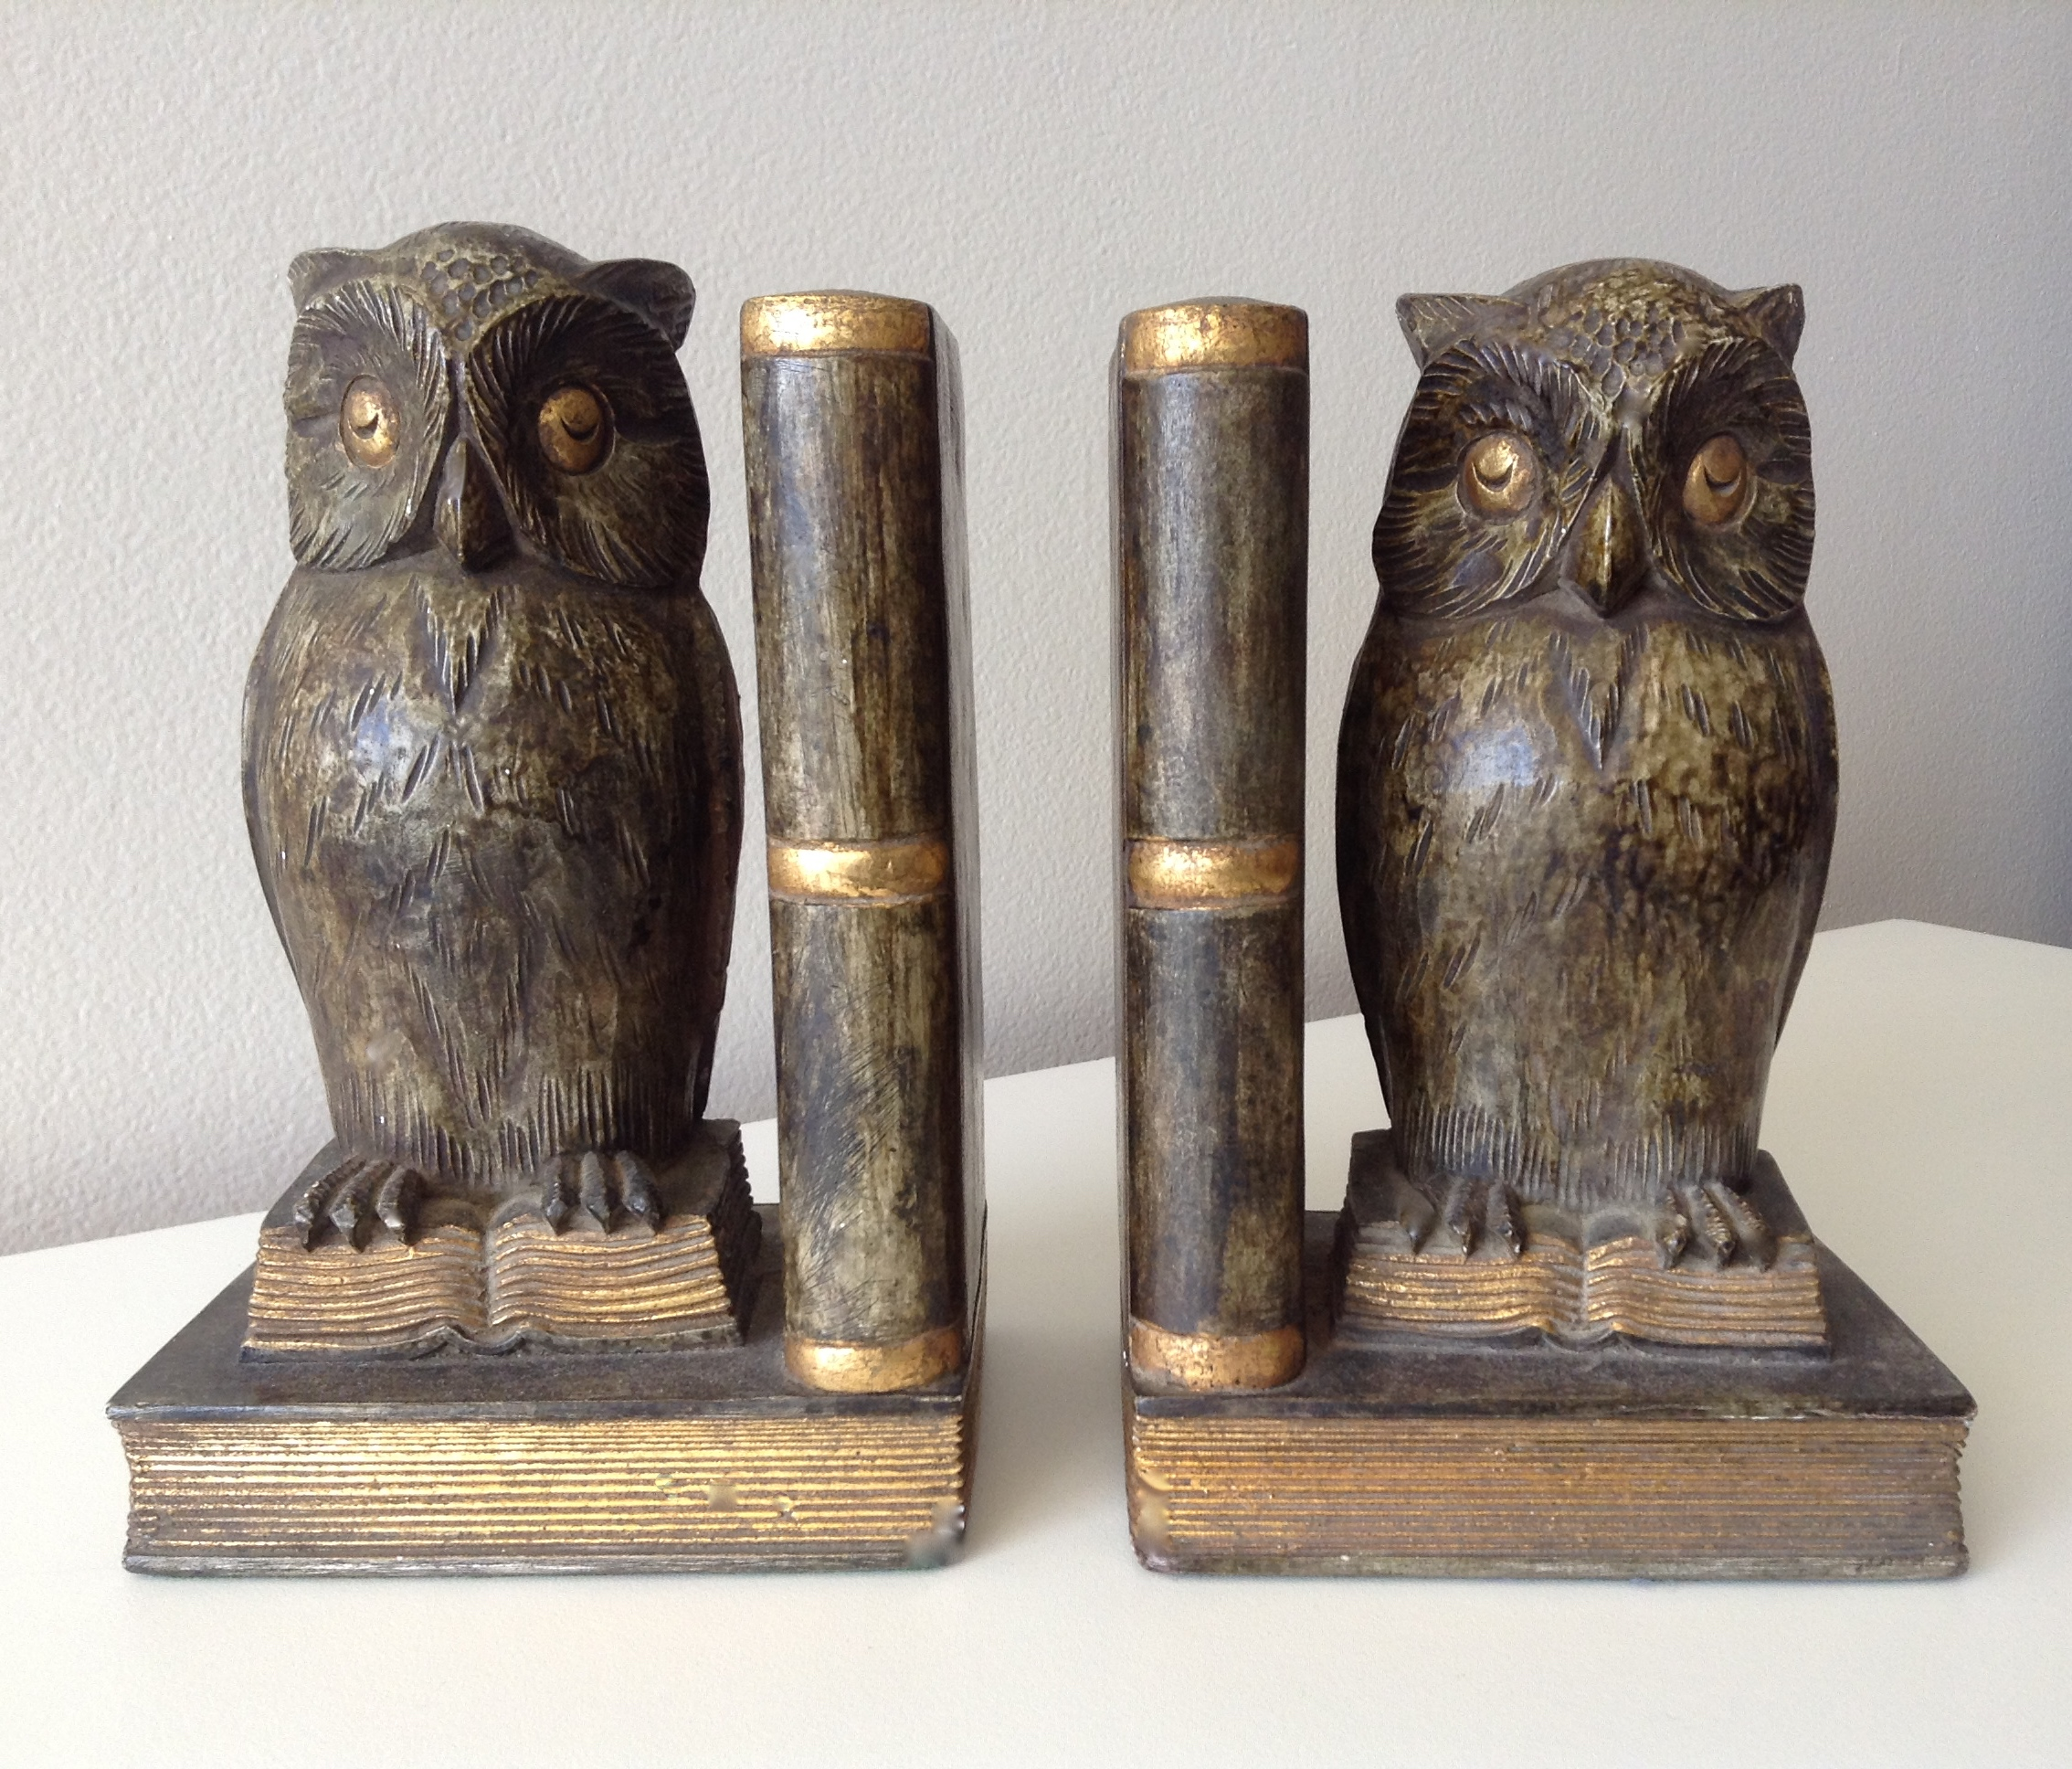 Plaster U0026 Gilt Owl U0026 Book Bookends   A Pair   Image ...